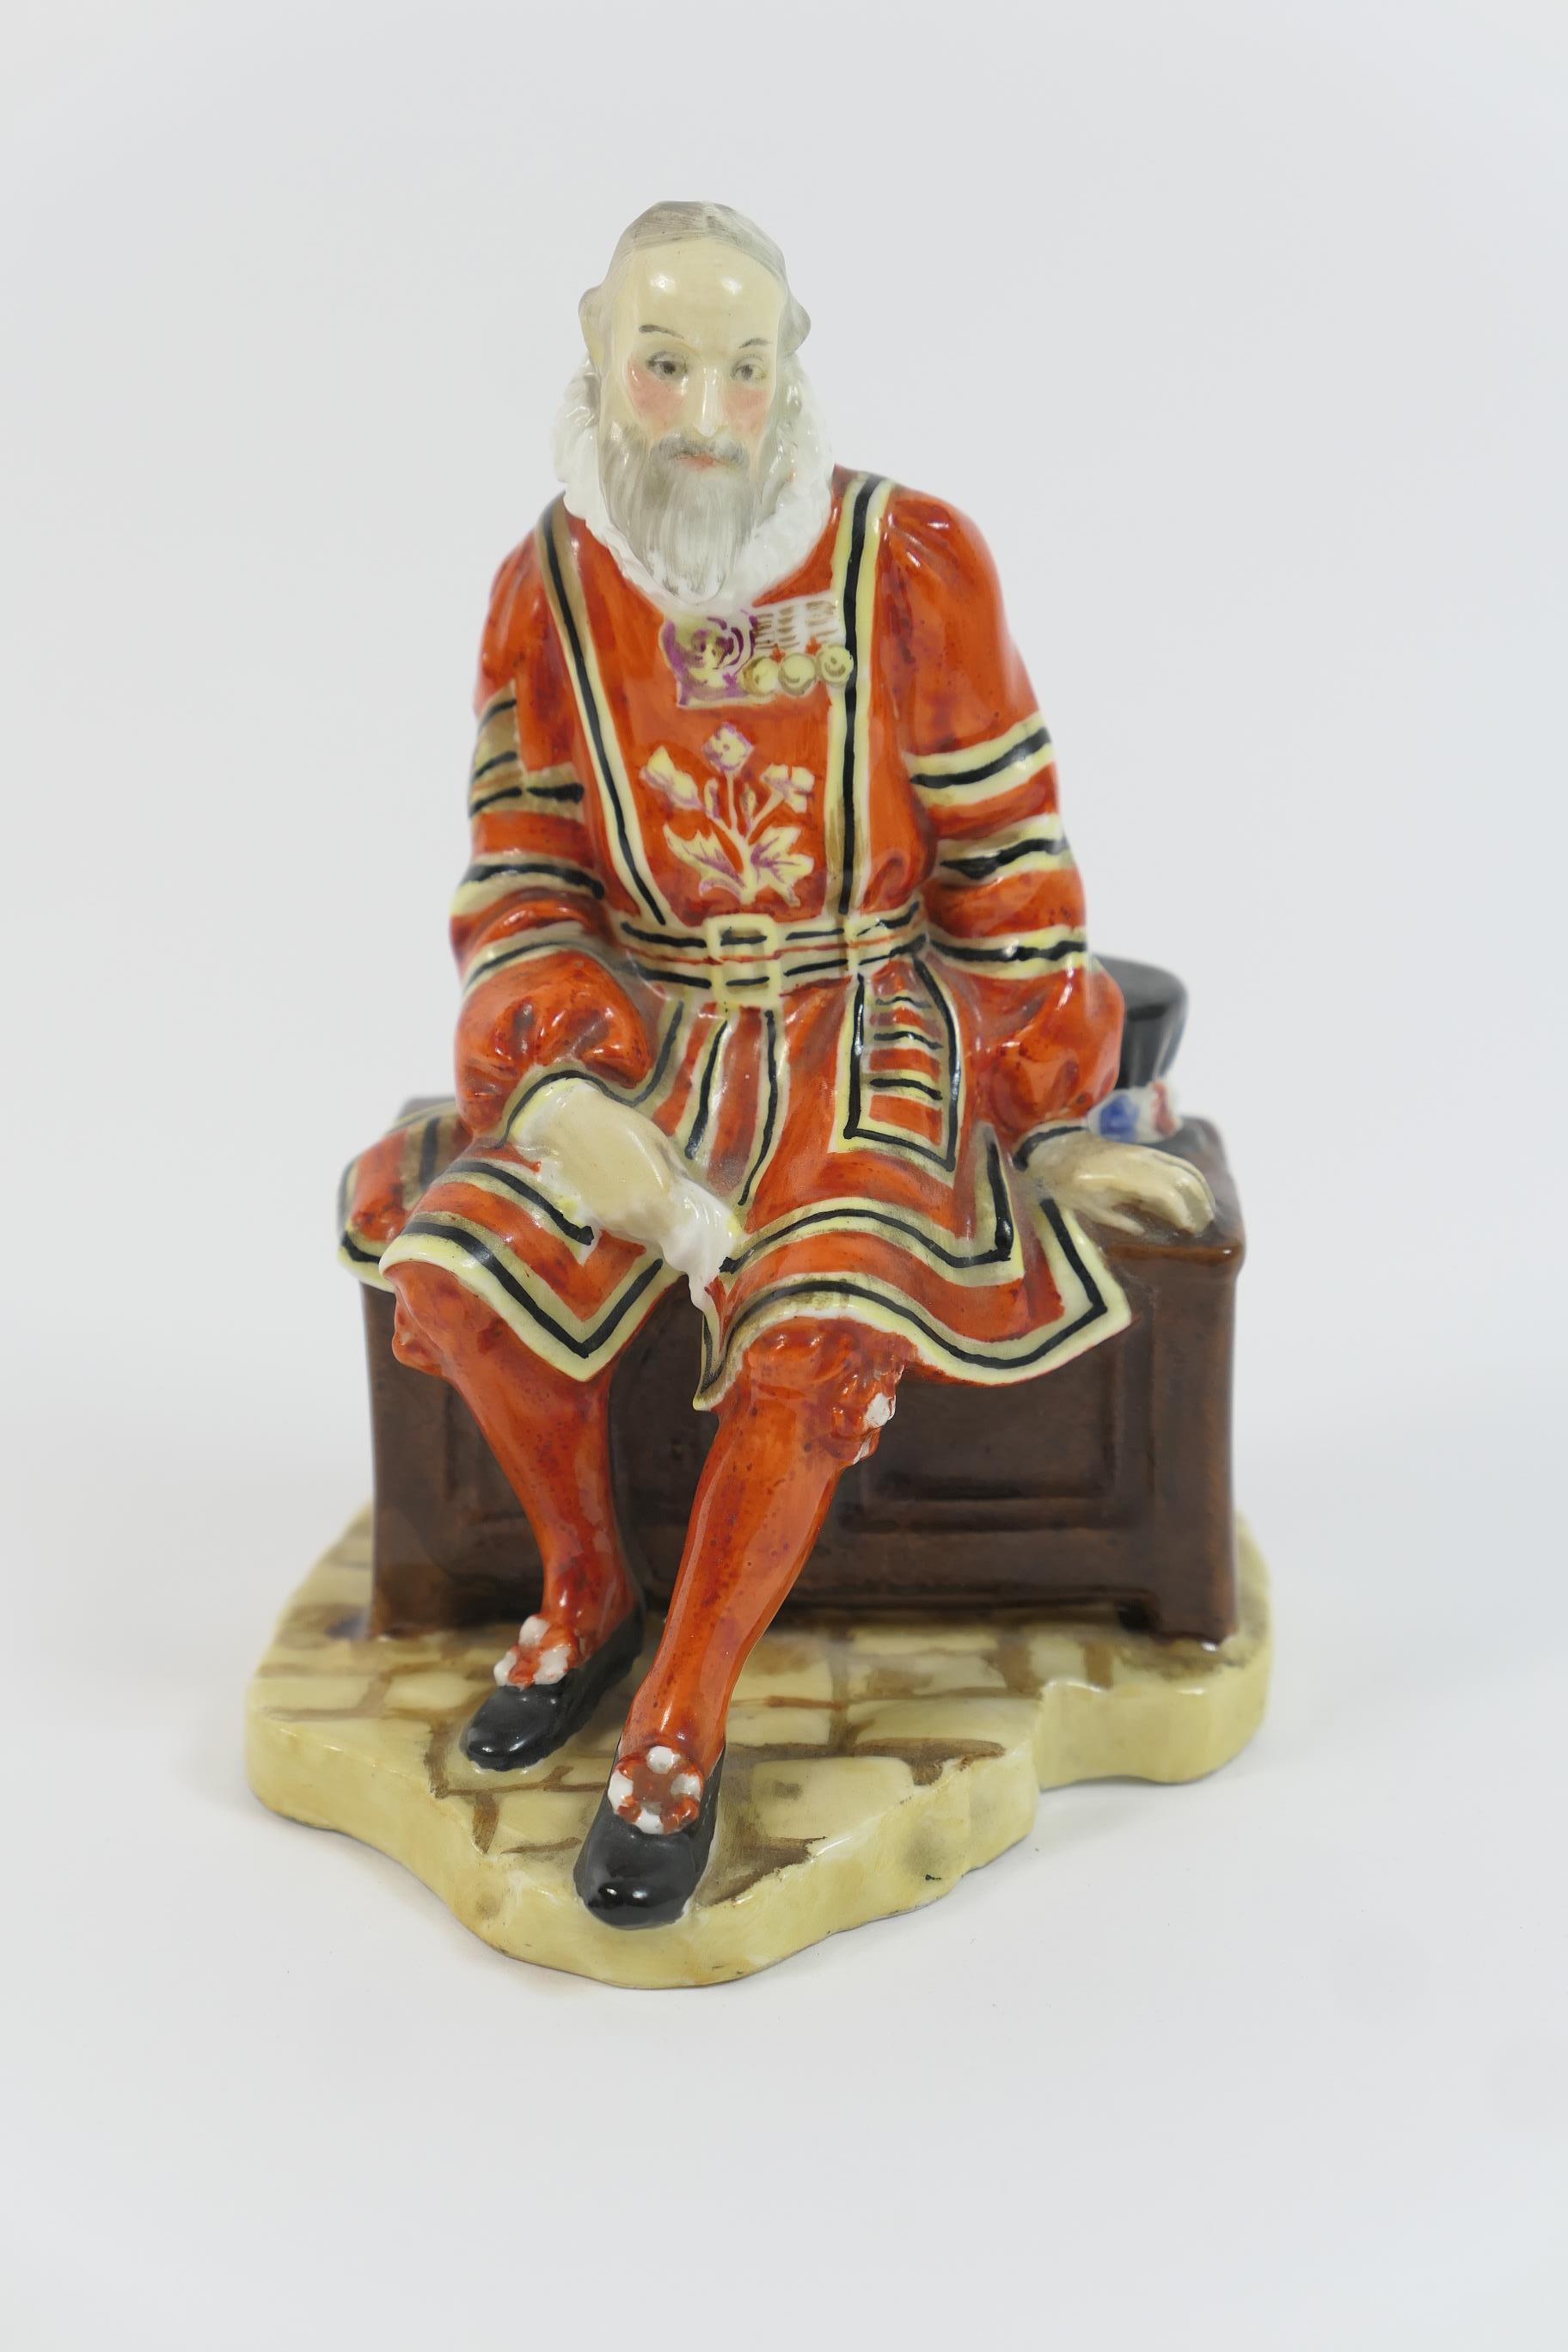 Lot 1 - Royal Doulton china figure 'A Yeoman of the Guard', HN688, designed by L Harradine, issued 1924-